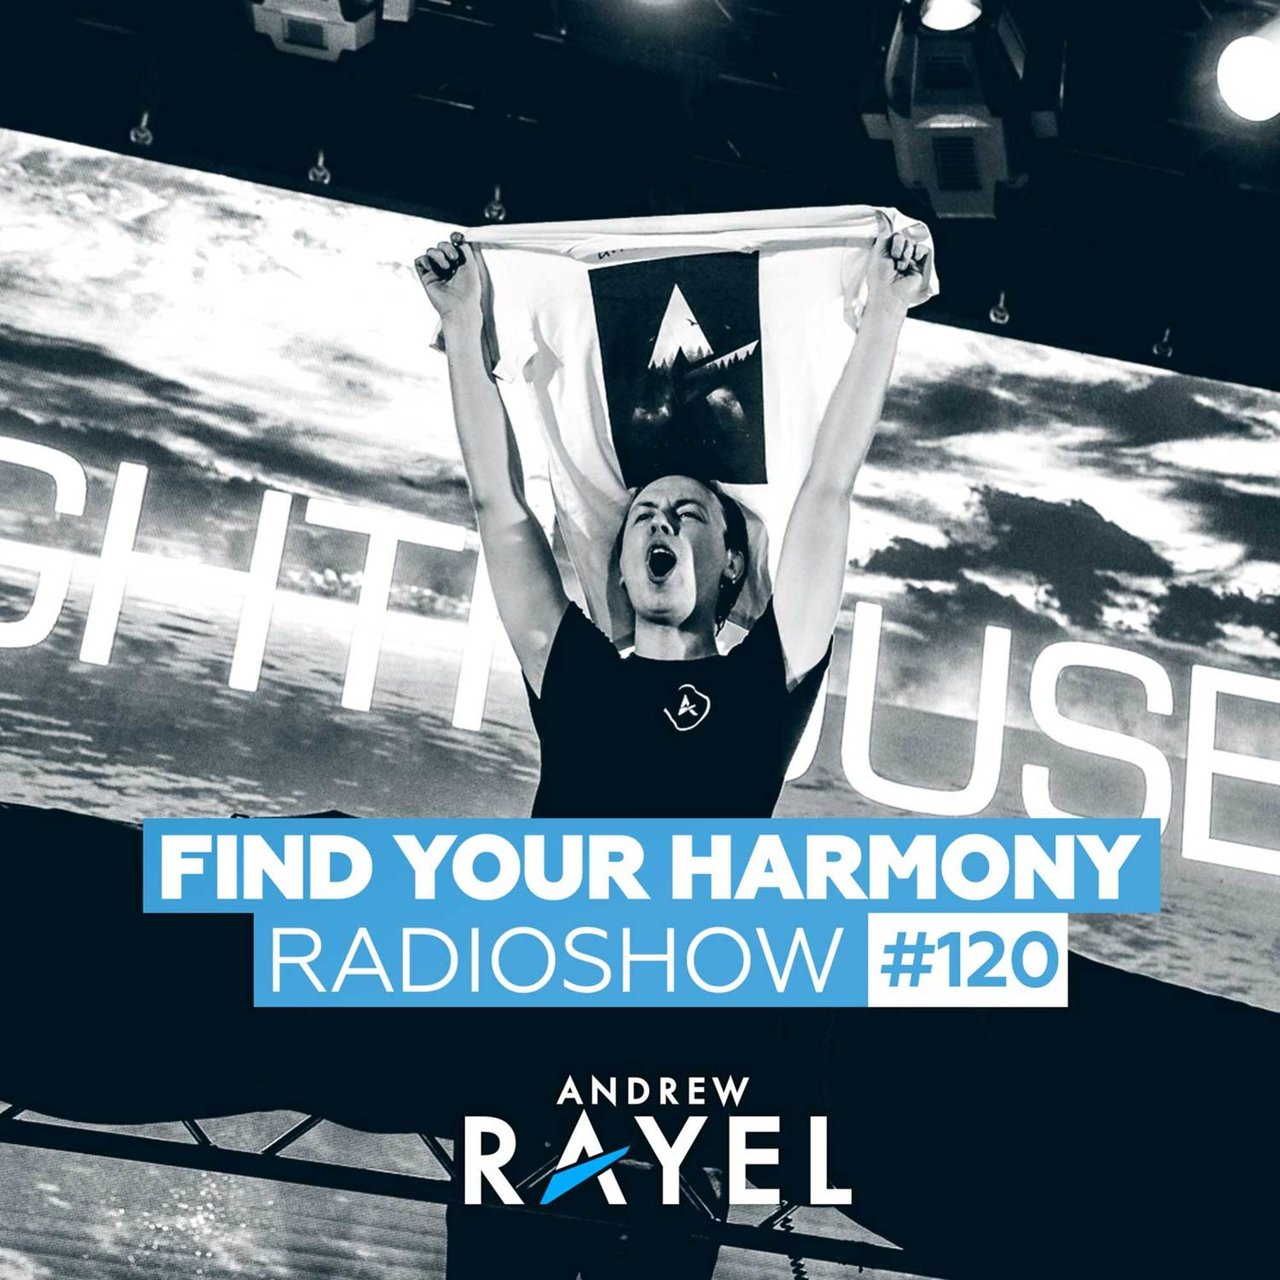 Find Your Harmony Radioshow #120